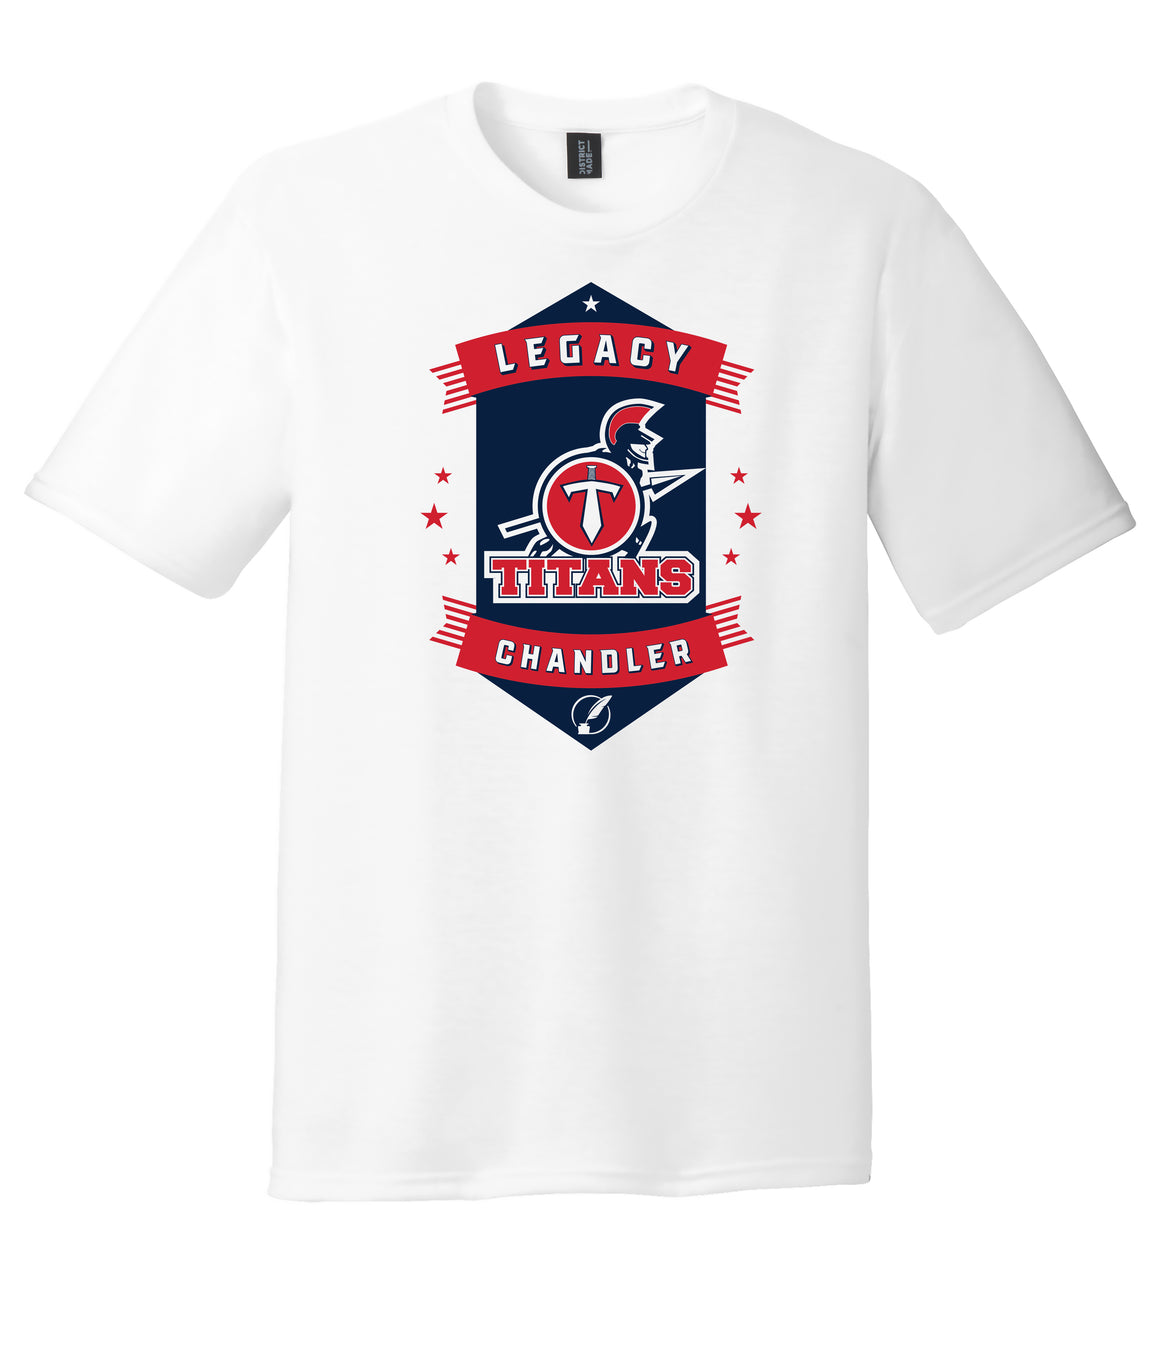 Legacy Traditional School Chandler - White Spirit Day Shirt w/Mascot